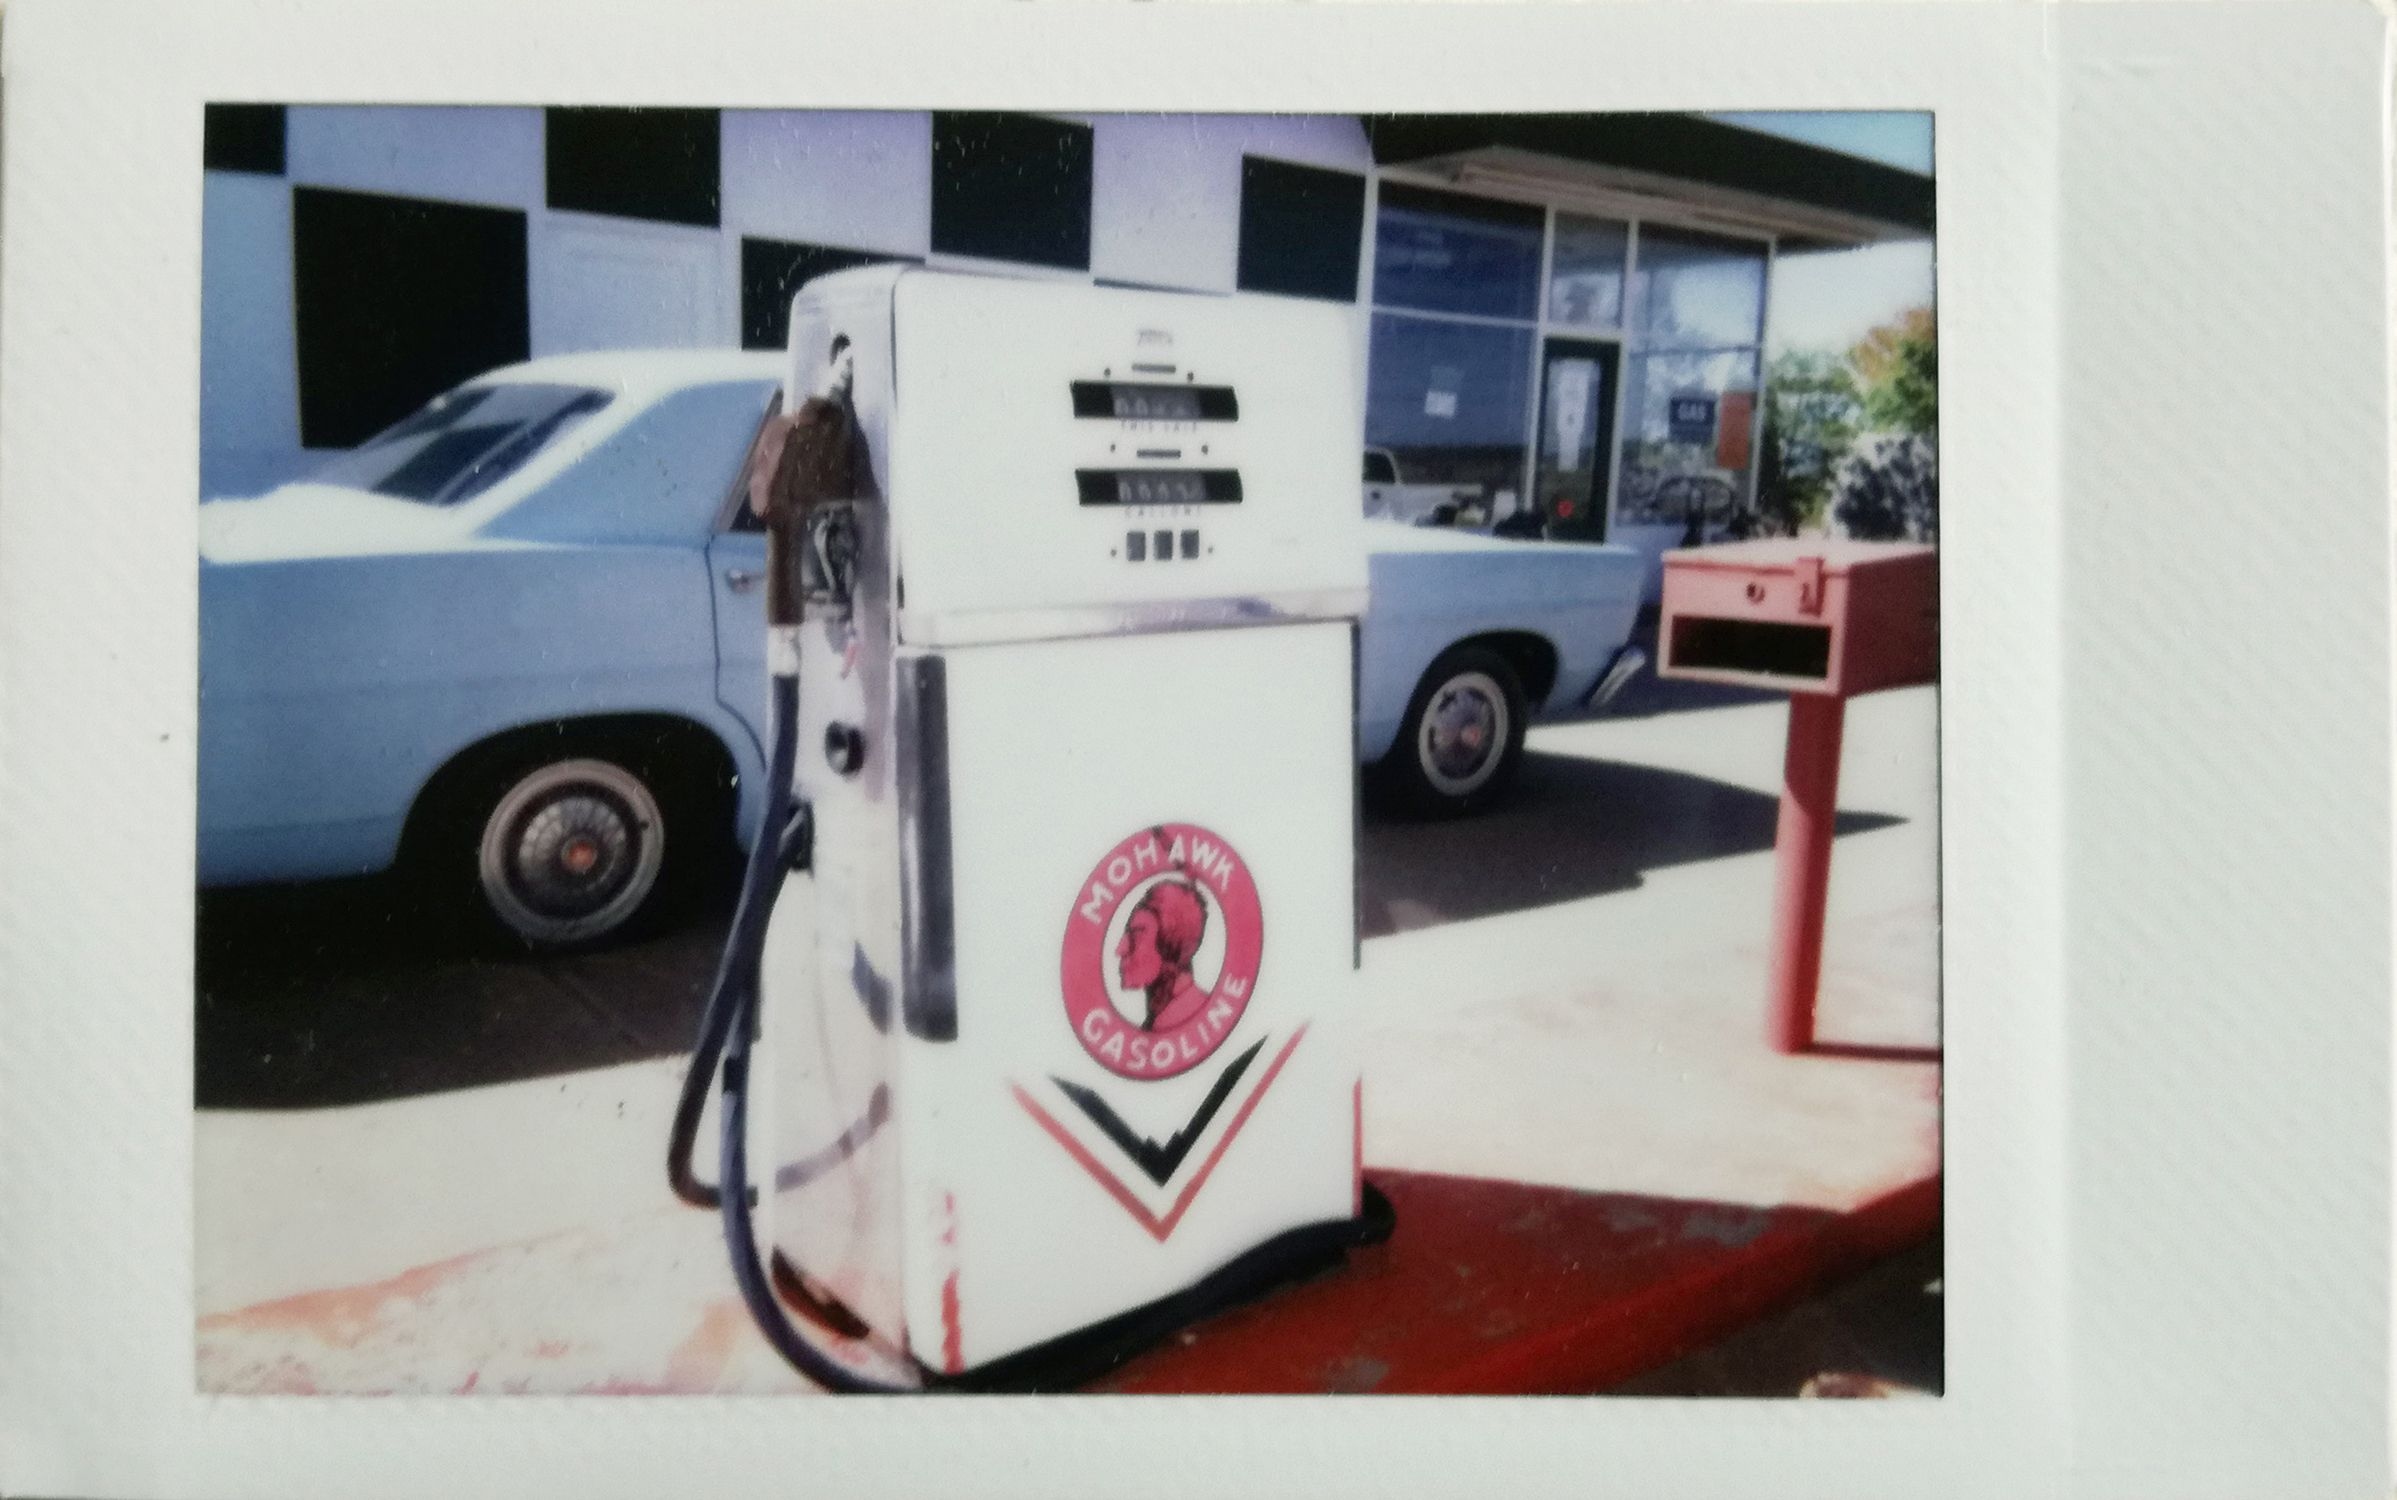 Kimdary_yin_Polaroid_Podcast_travel_roadtrip_USA